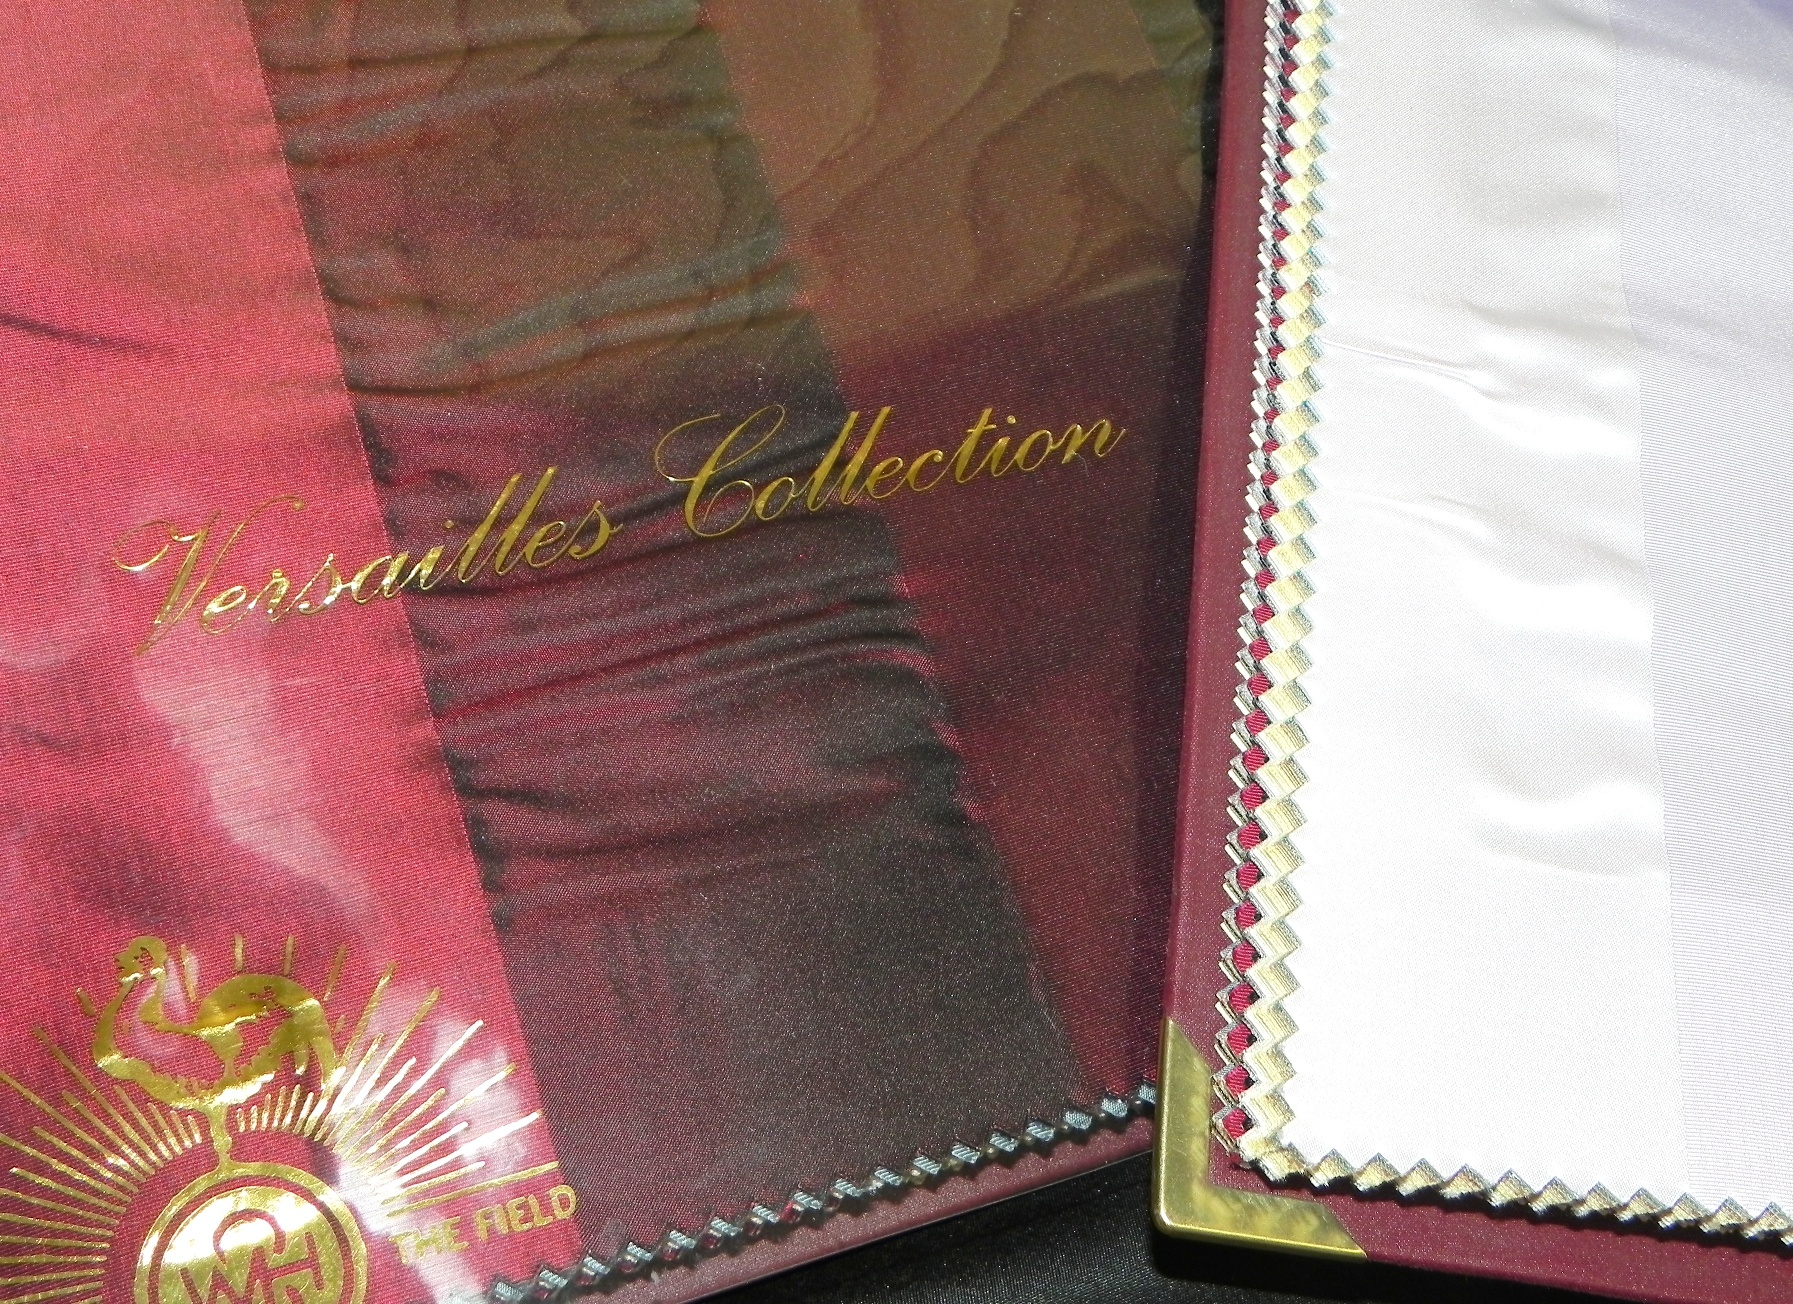 Versailles Collection Book5 -